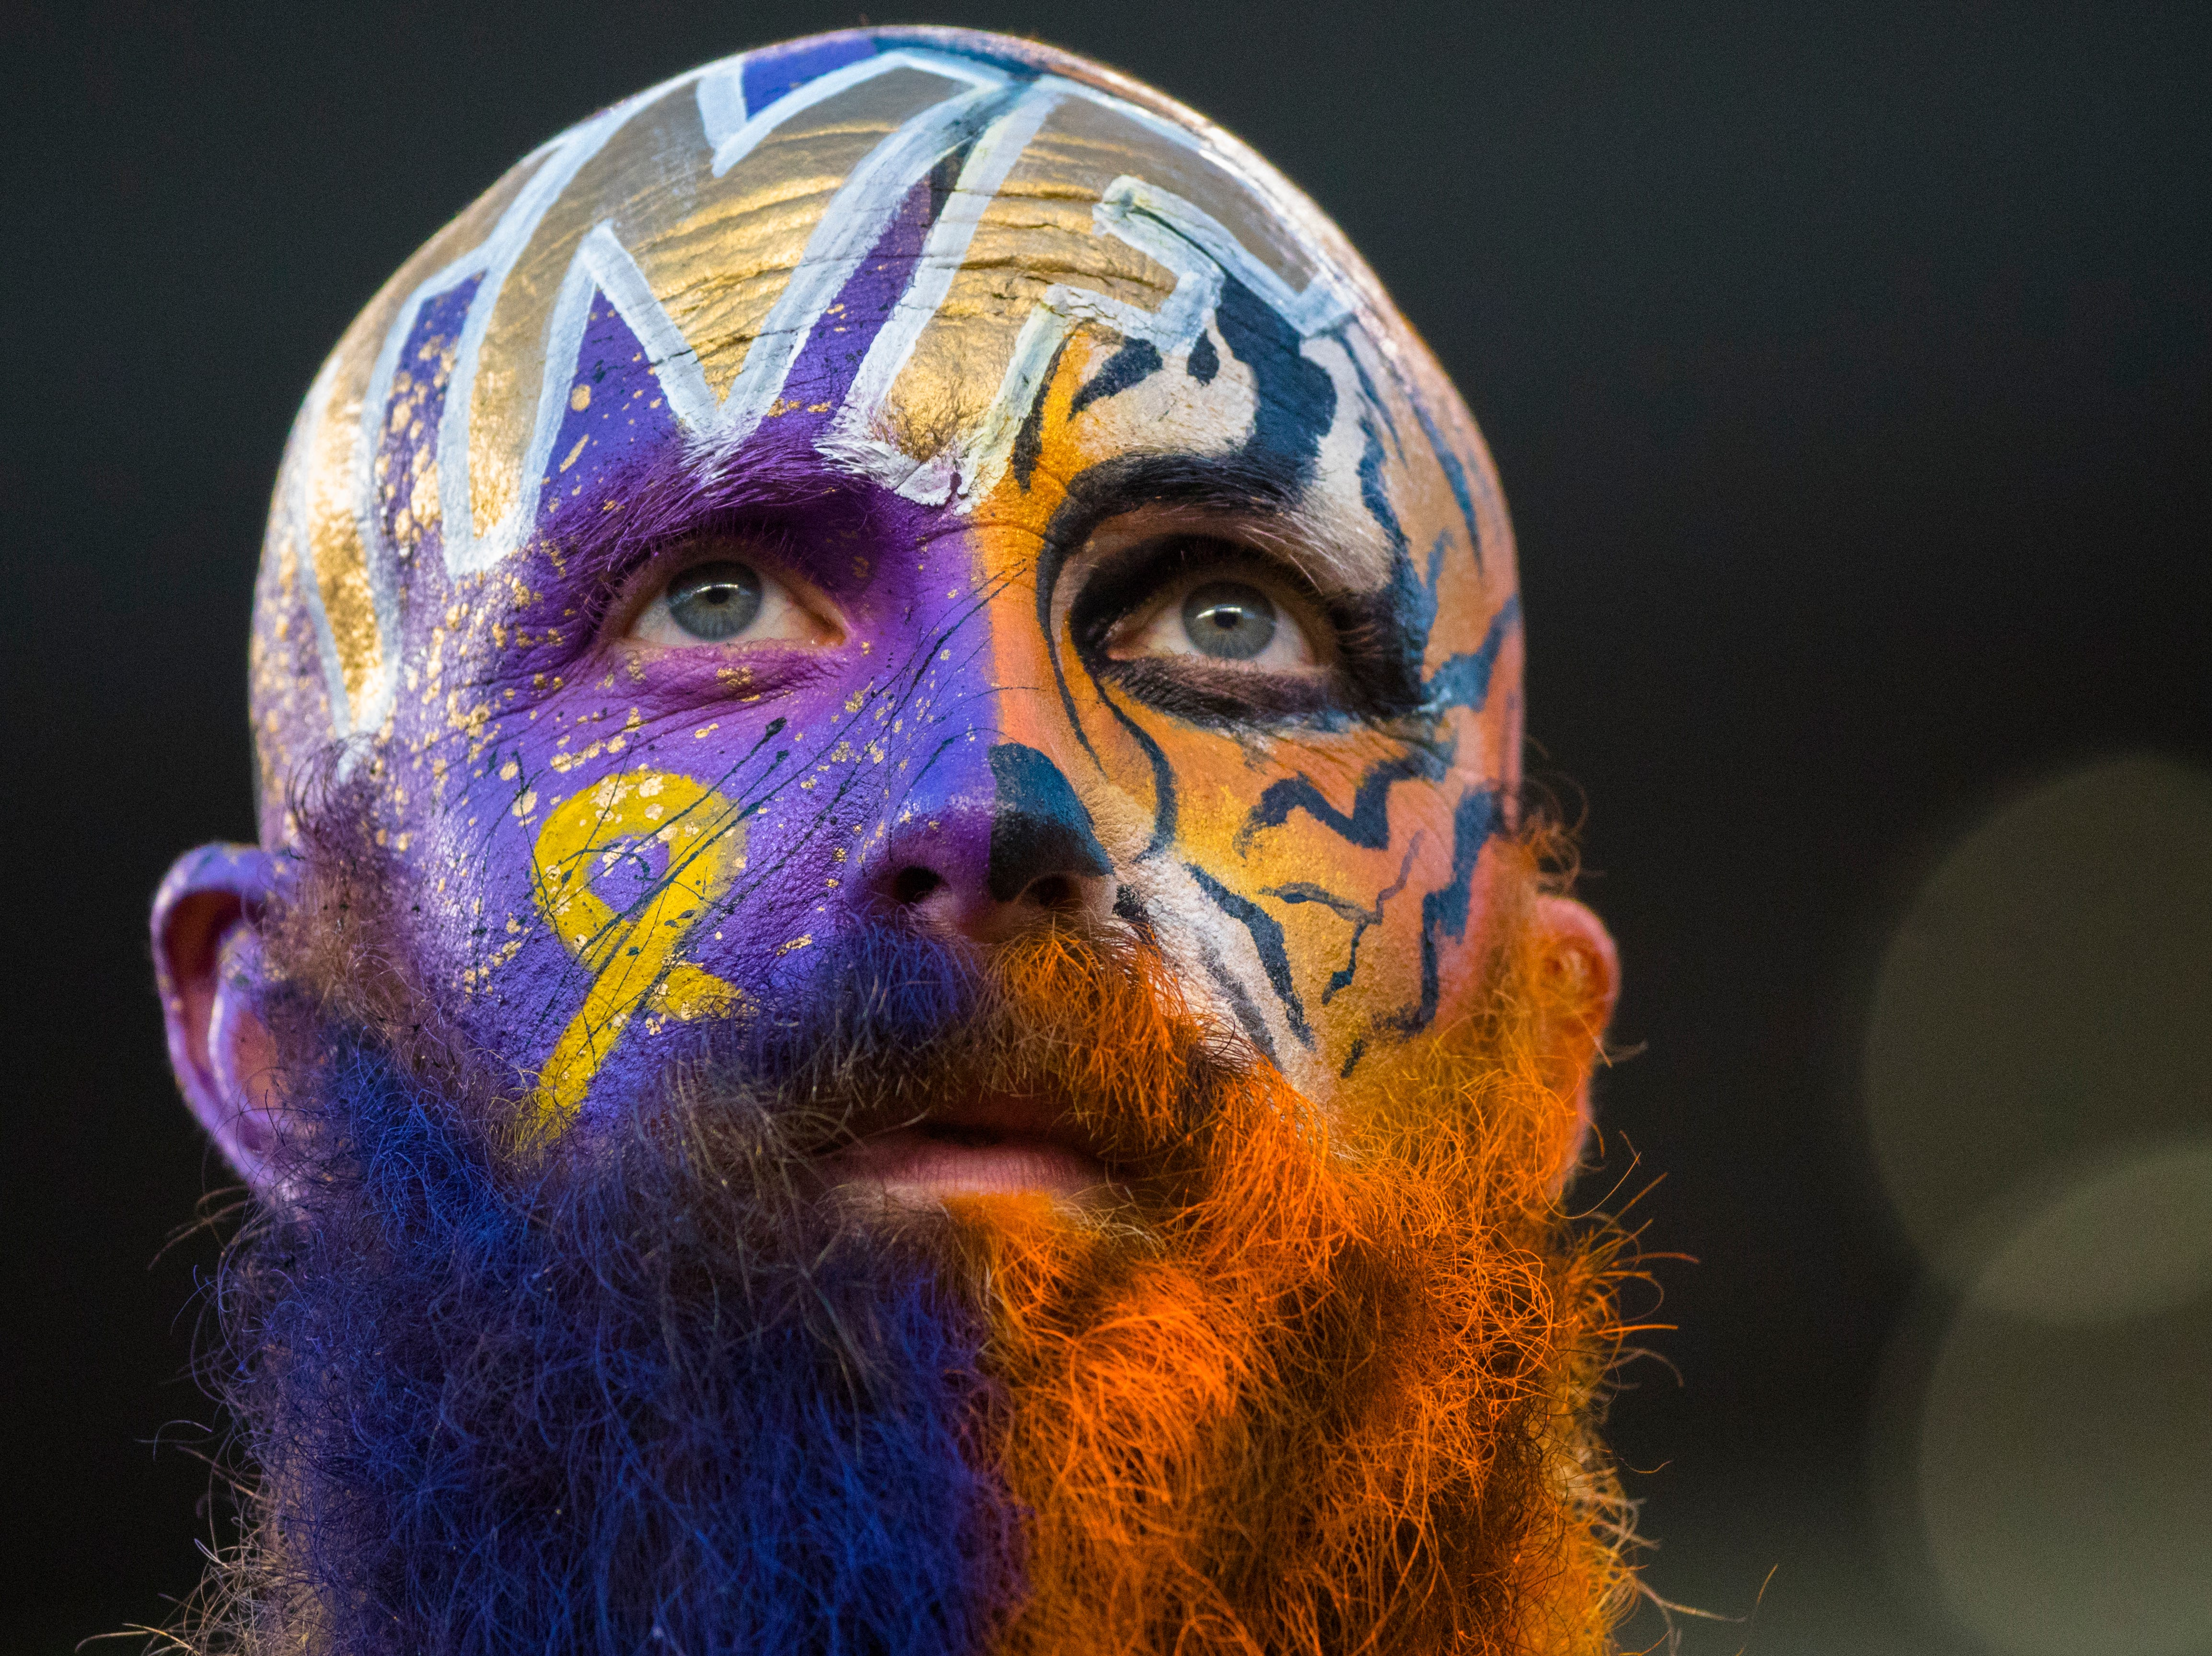 Garey Faulkner looks on before the Week 2 NFL game between the Cincinnati Bengals and the Baltimore Ravens, Thursday, Sept. 13, 2018, at Paul Brown Stadium in Cincinnati. Gary said he painted his face half for the Ravens and half for the Bengals because over the years of attending NFL games he's met so many great people from every city.